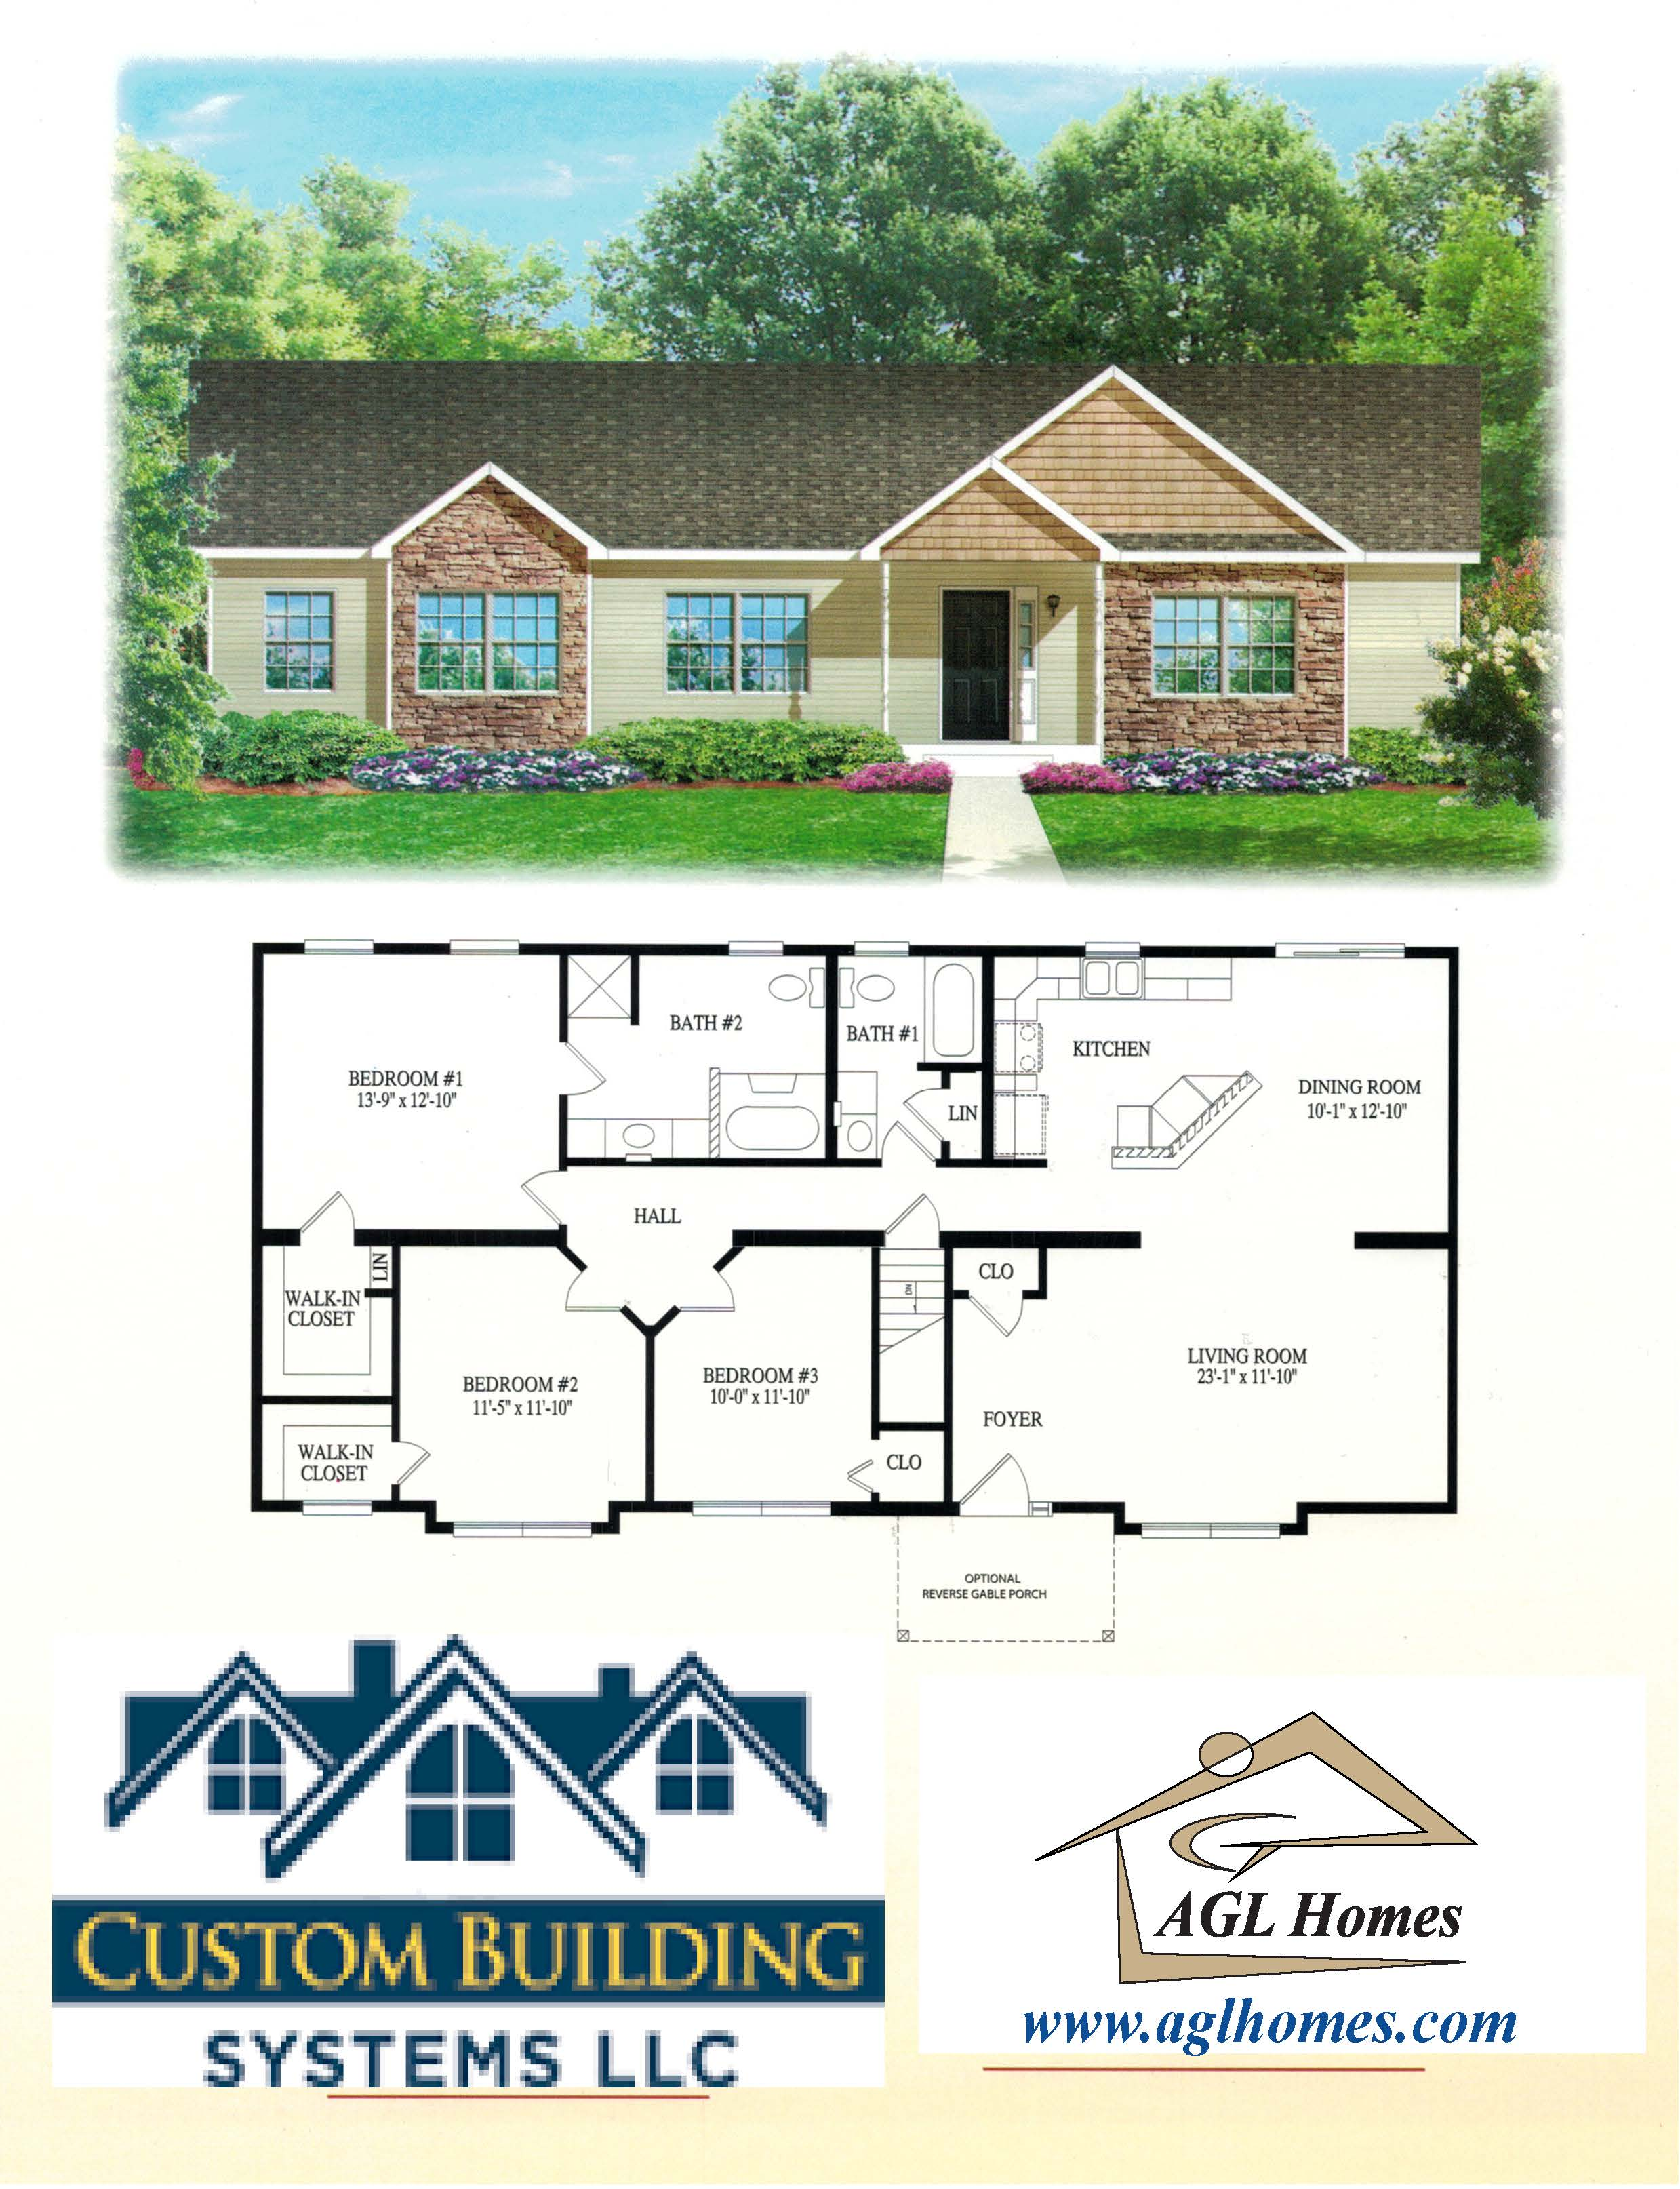 Modular Home Plans NY, CBS Modular Homes from AGL Homes ... on 3-bedroom ranch plans, country cottage modular home plans, 3-bedroom apartment plans, 3-bedroom cabin plans, modular ranch floor plans, 3-bedroom duplex plans, 3-bedroom triplex plans, mobile modular home floor plans, large modular home plans, 3-bedroom manufactured homes, champion double wide floor plans, custom modular home plans, clayton mobile homes floor plans, two bedroom house plans, 3-bedroom trailer homes, triple wide modular home plans, 3-bedroom building plans, 3 bedroom 1 floor plans, 3000 sq ft modular home floor plans, bonnavilla modular plans,